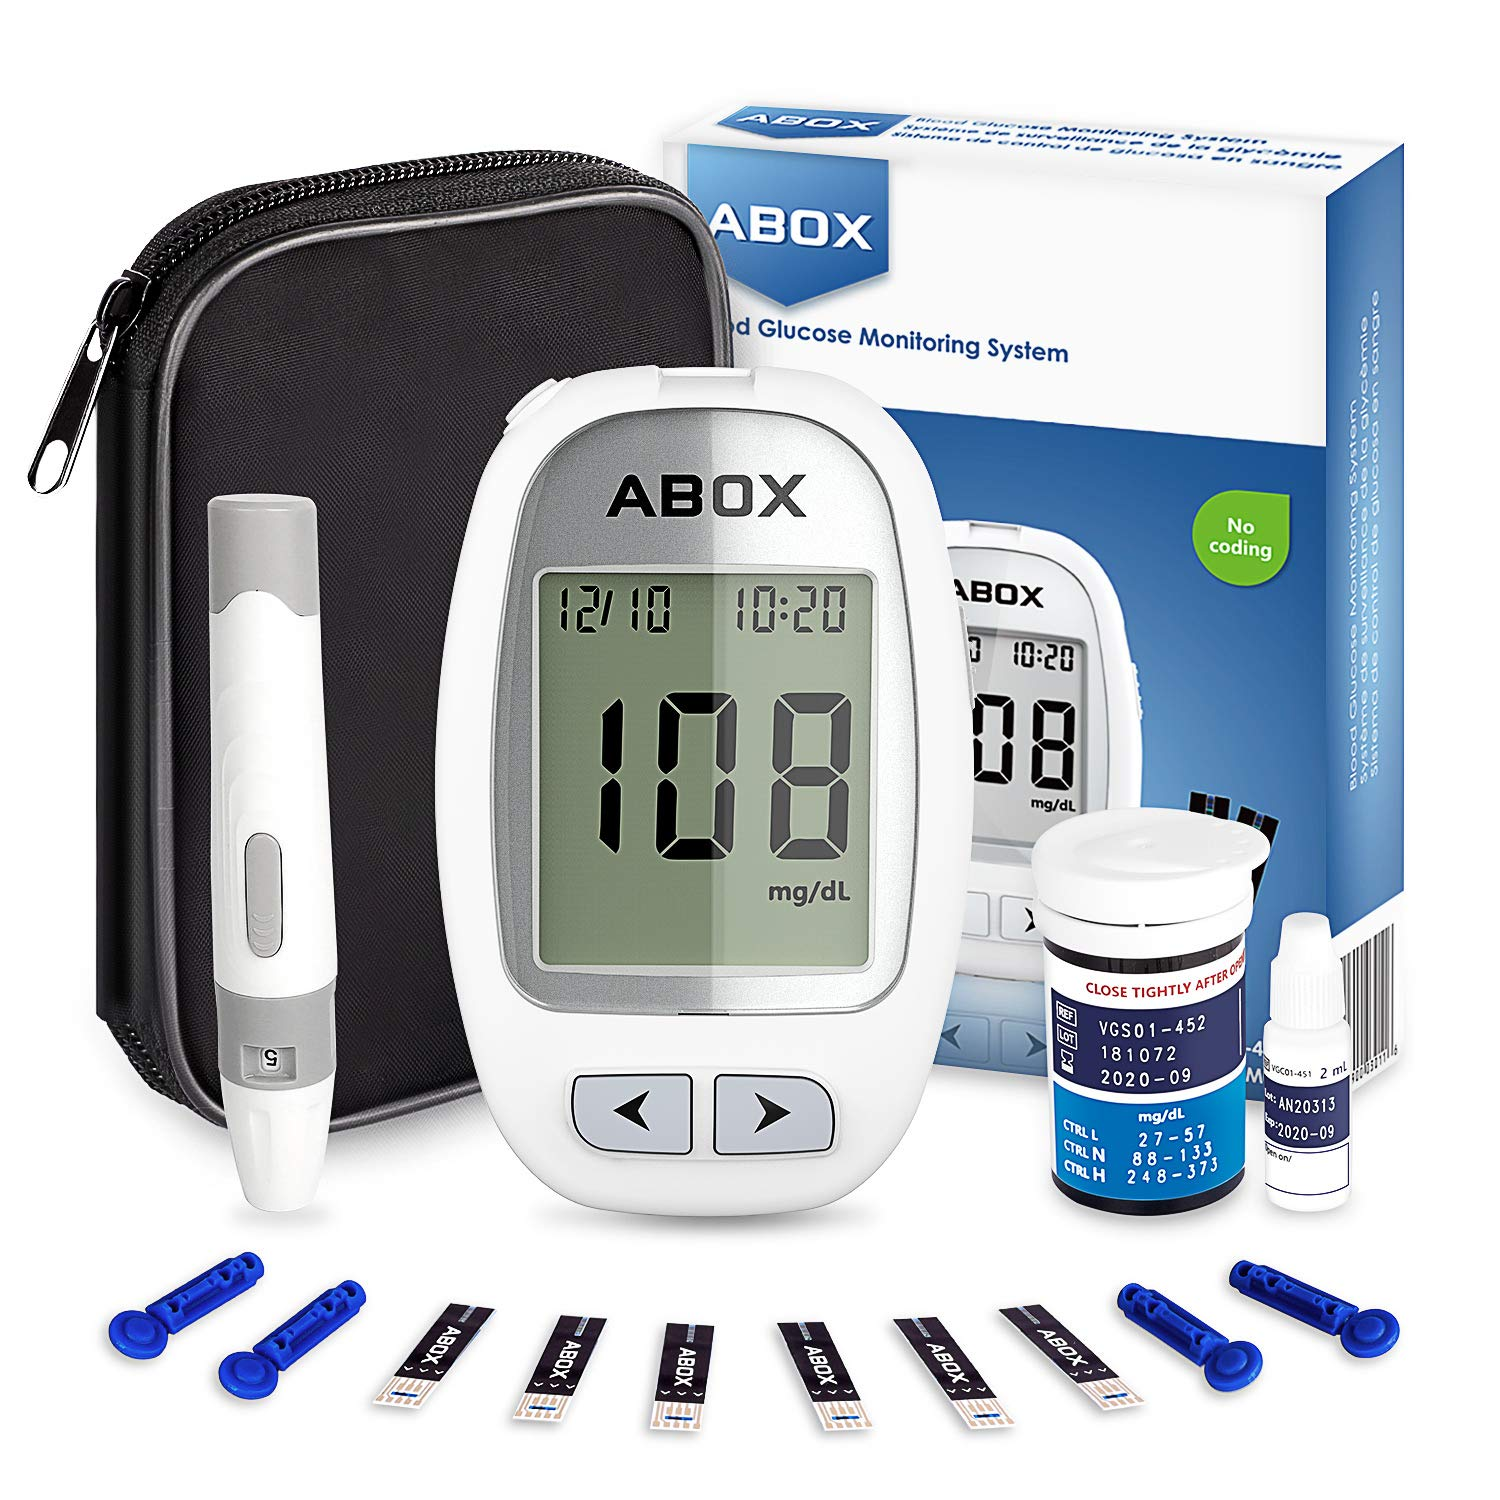 Blood Glucose Meter Kit, ABOX Glucose Monitoring Kit Diabetes Testing Kit with 25 Test Strips, 25 Lancets and Everything You Need to Test Blood Sugar Level product image